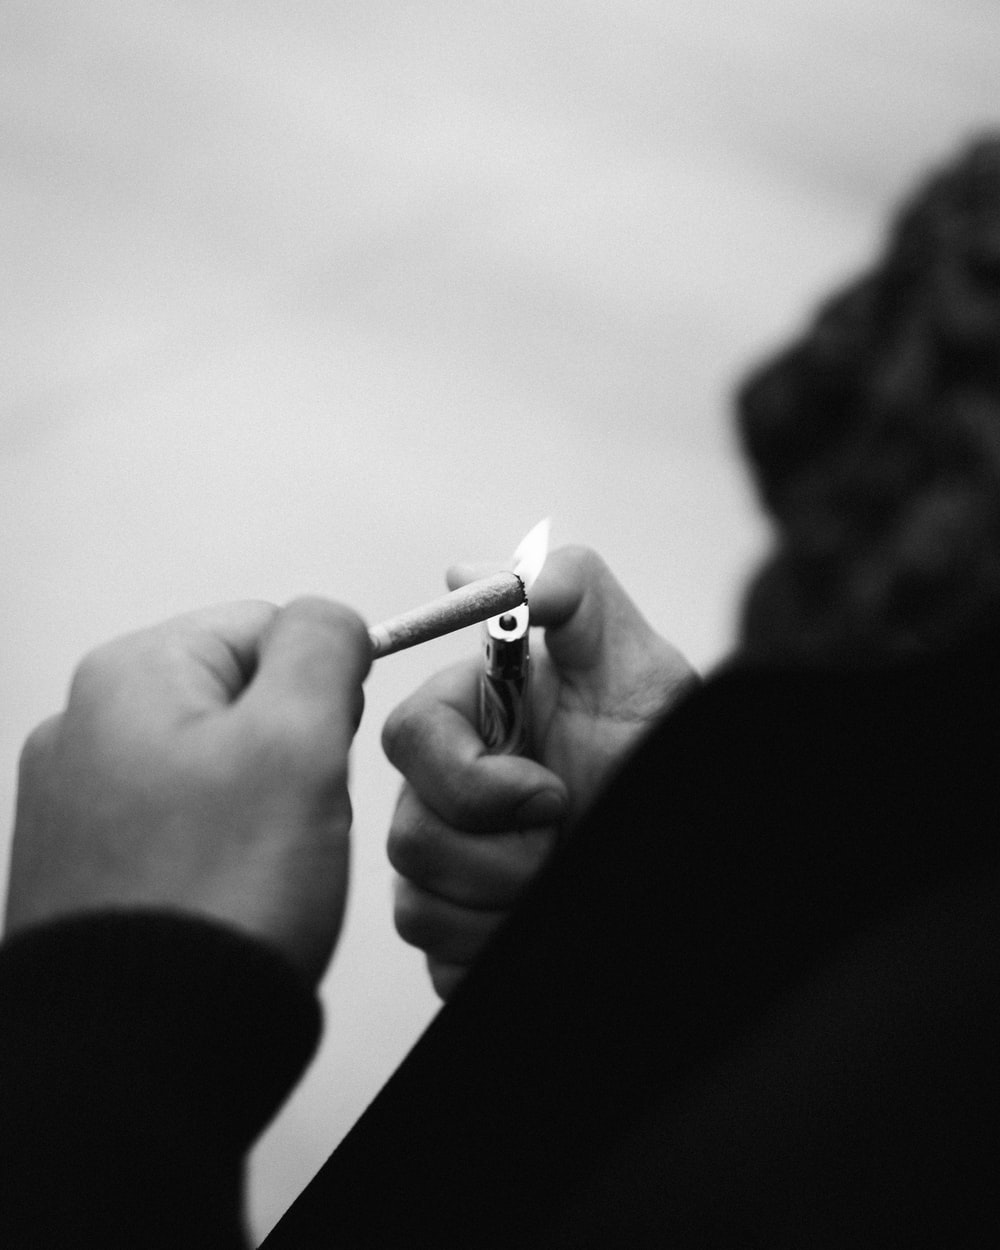 grayscale photo of person smoking cigarette